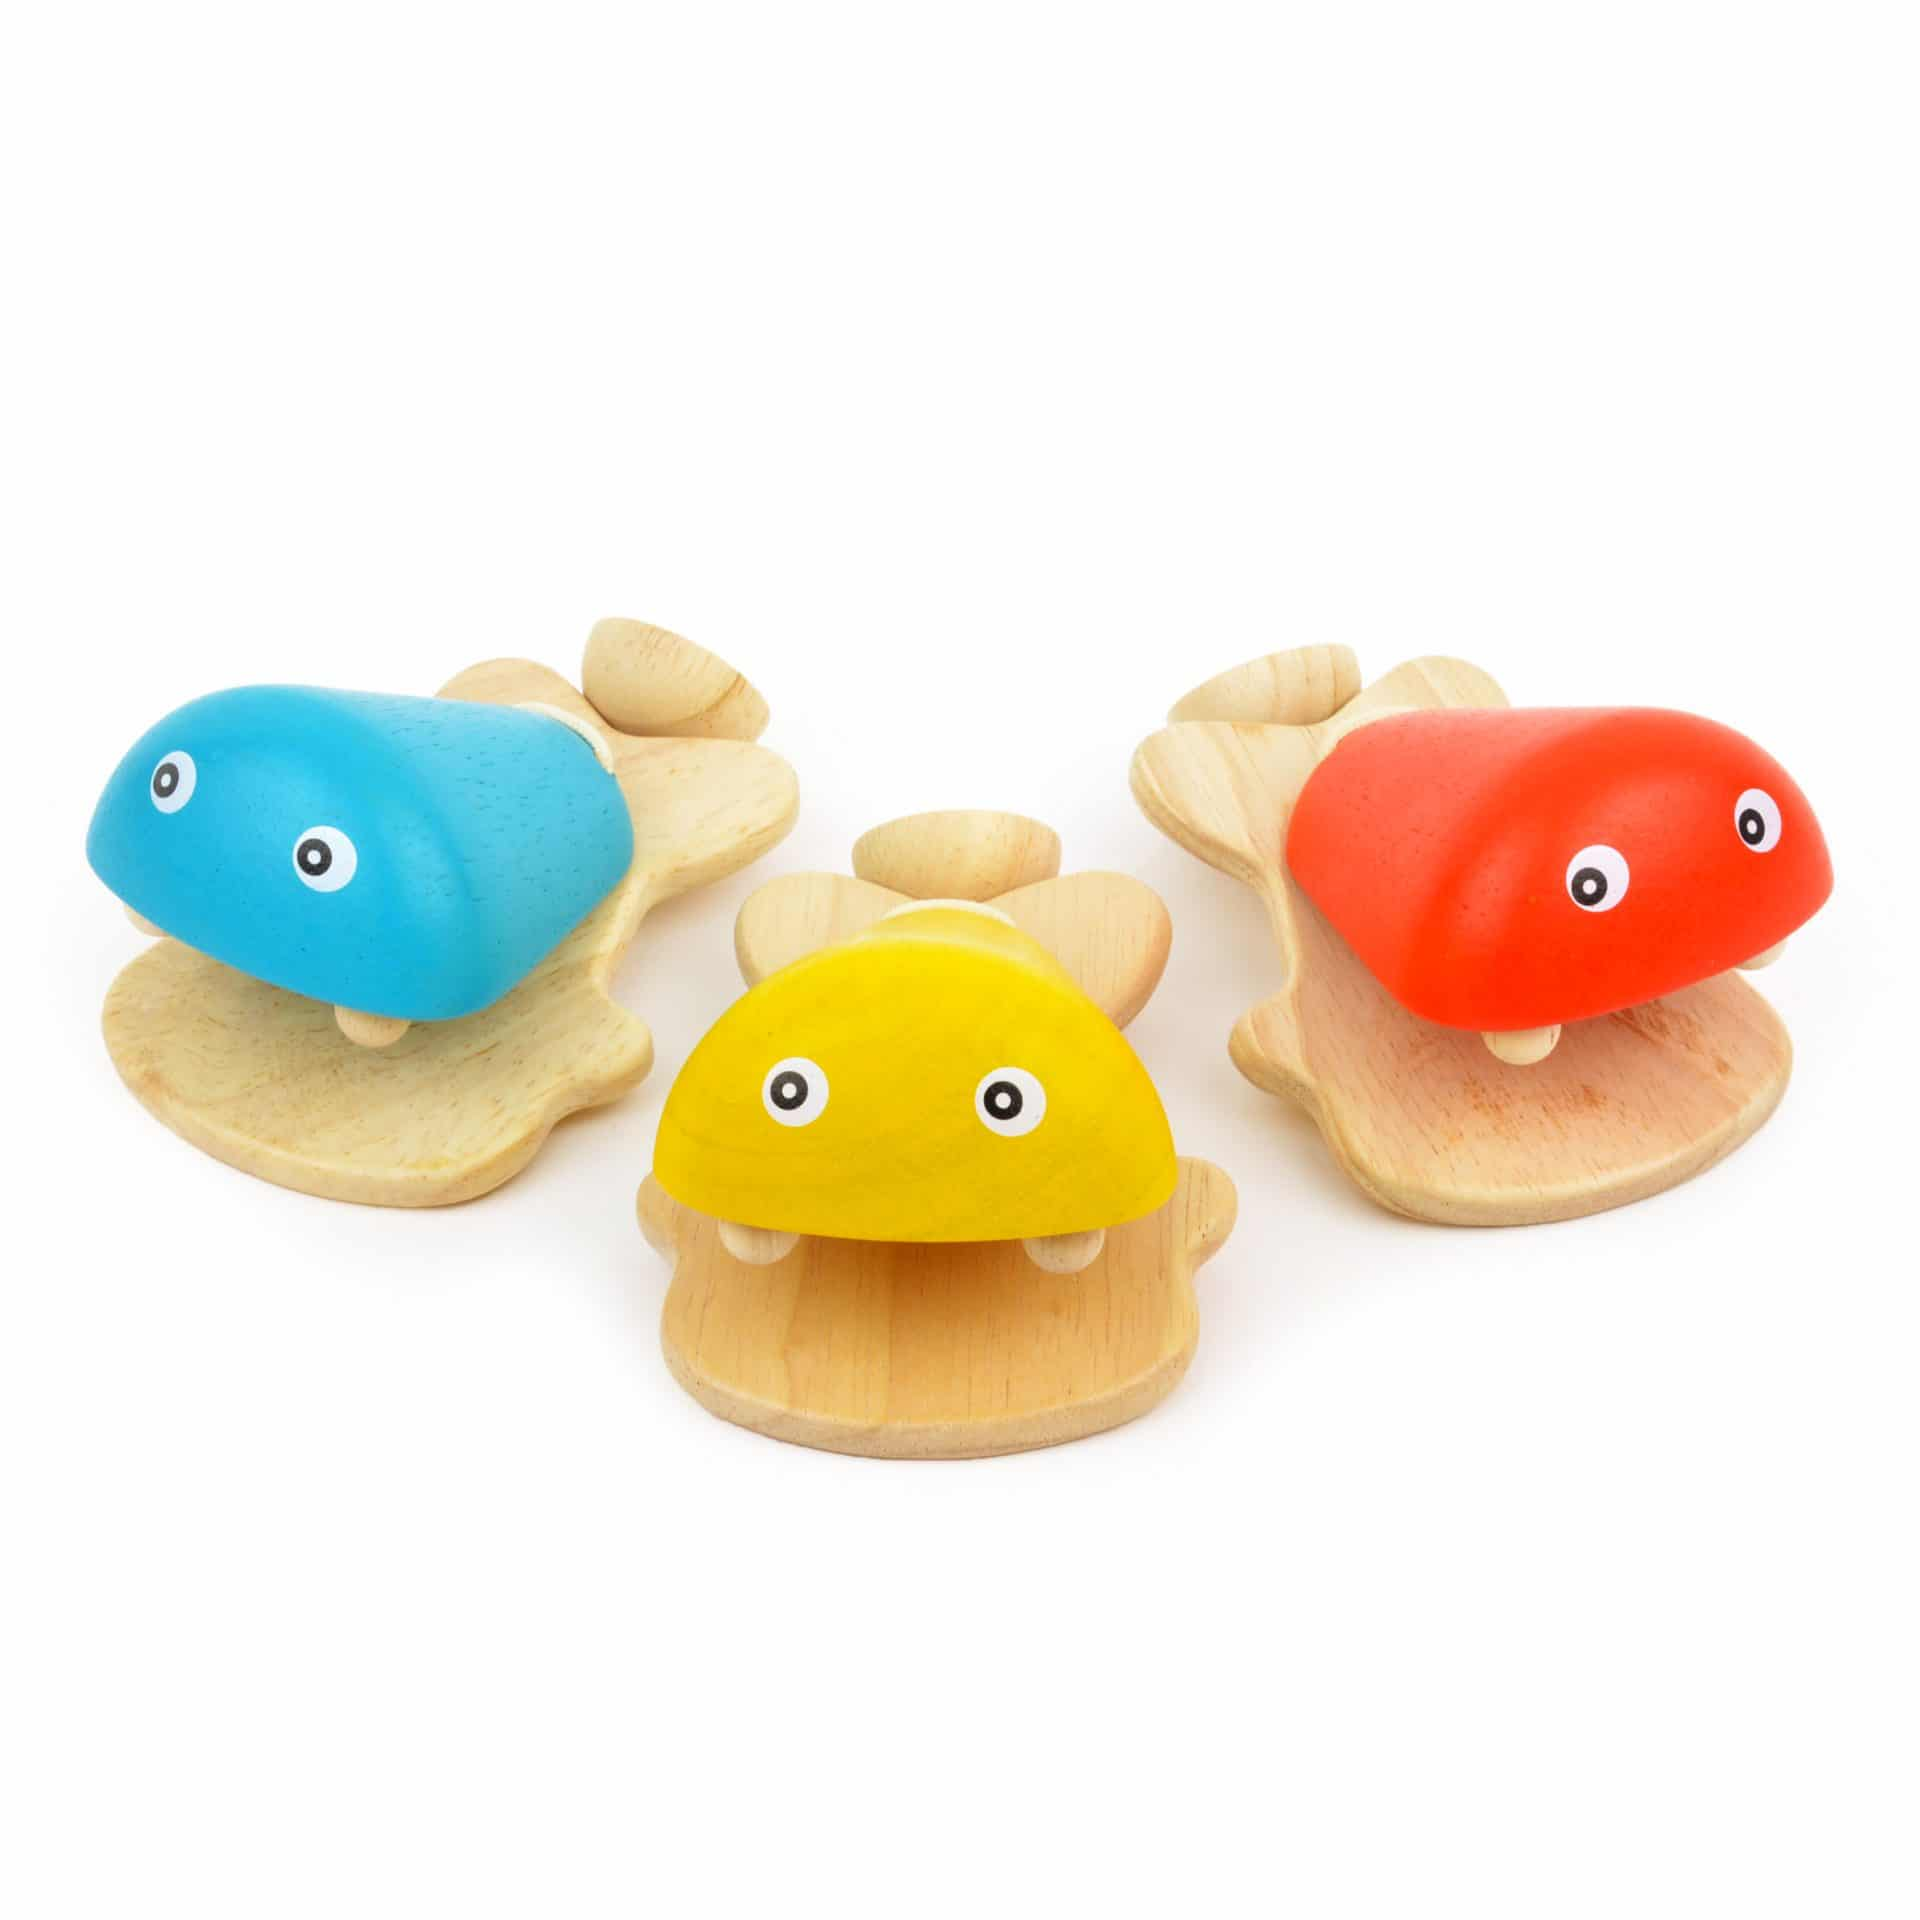 Wooden fish-shaped castanets